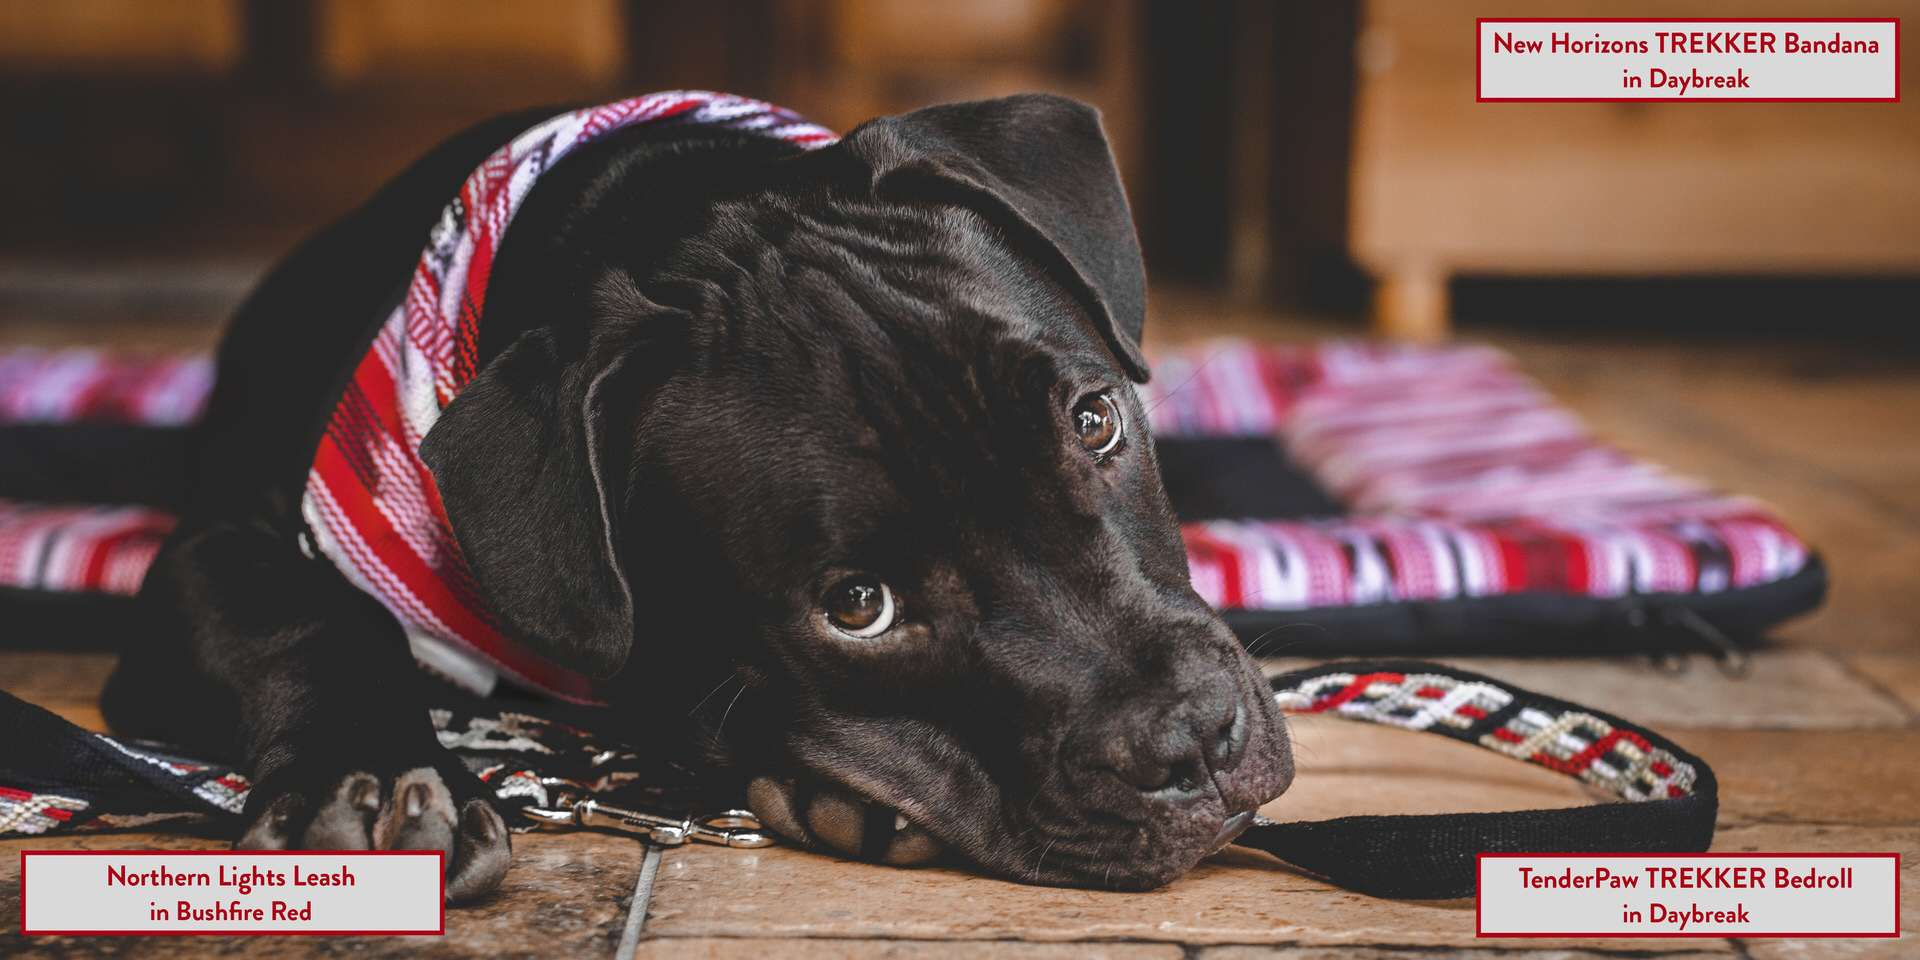 Pages 10 and 11 of RUFFLY's lookbook catalogue of dog gear feature a black dog laying on a red bed with matching leash and bandana